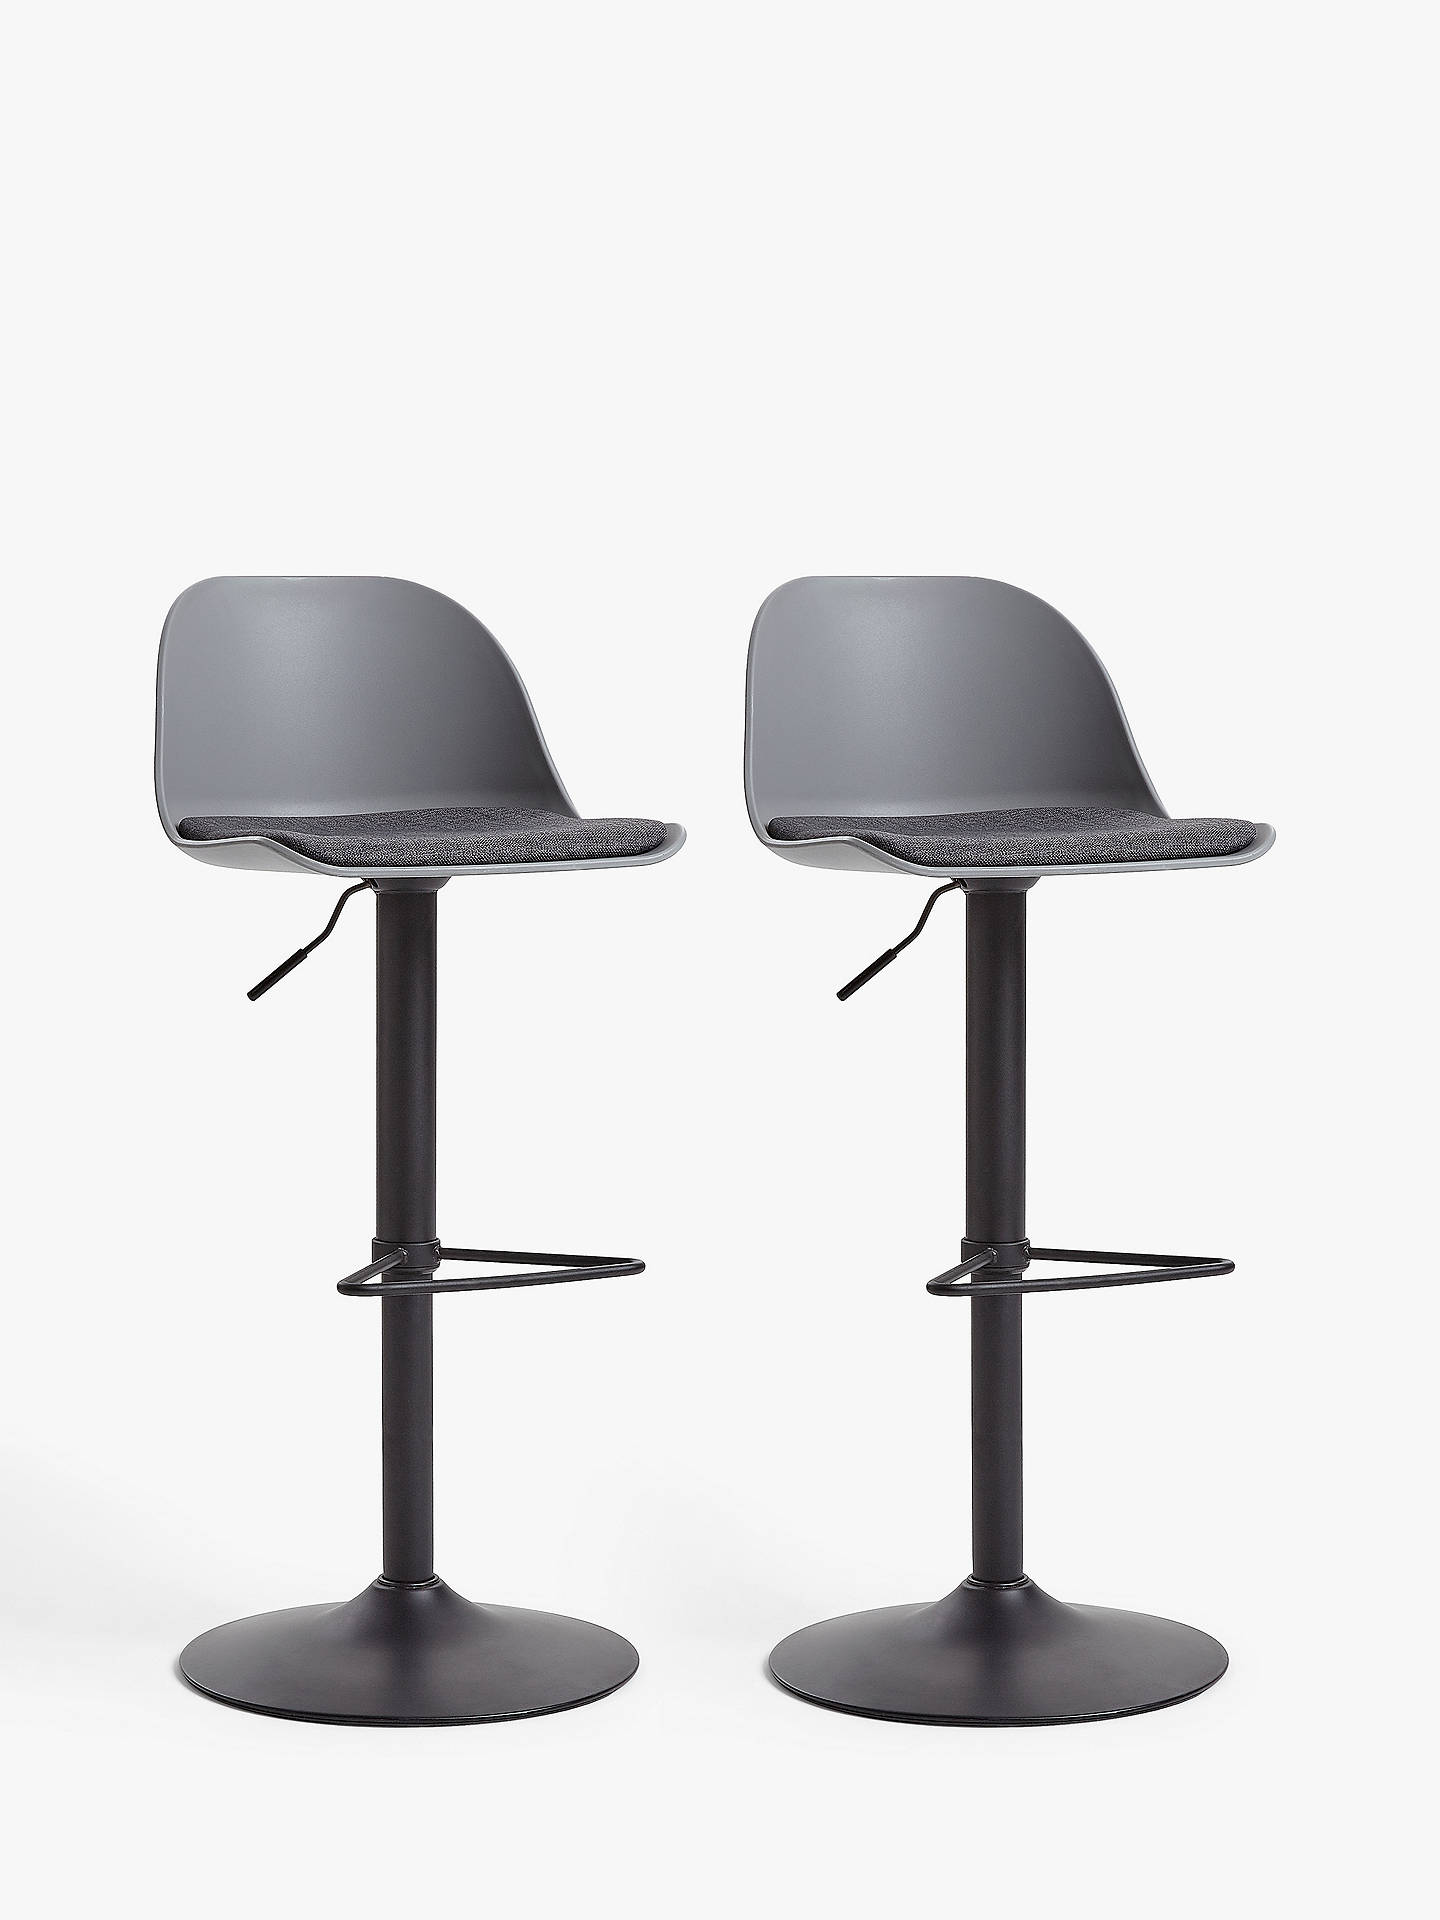 House By John Lewis Whistler Gas Lift Adjustable Bar Stools Set Of